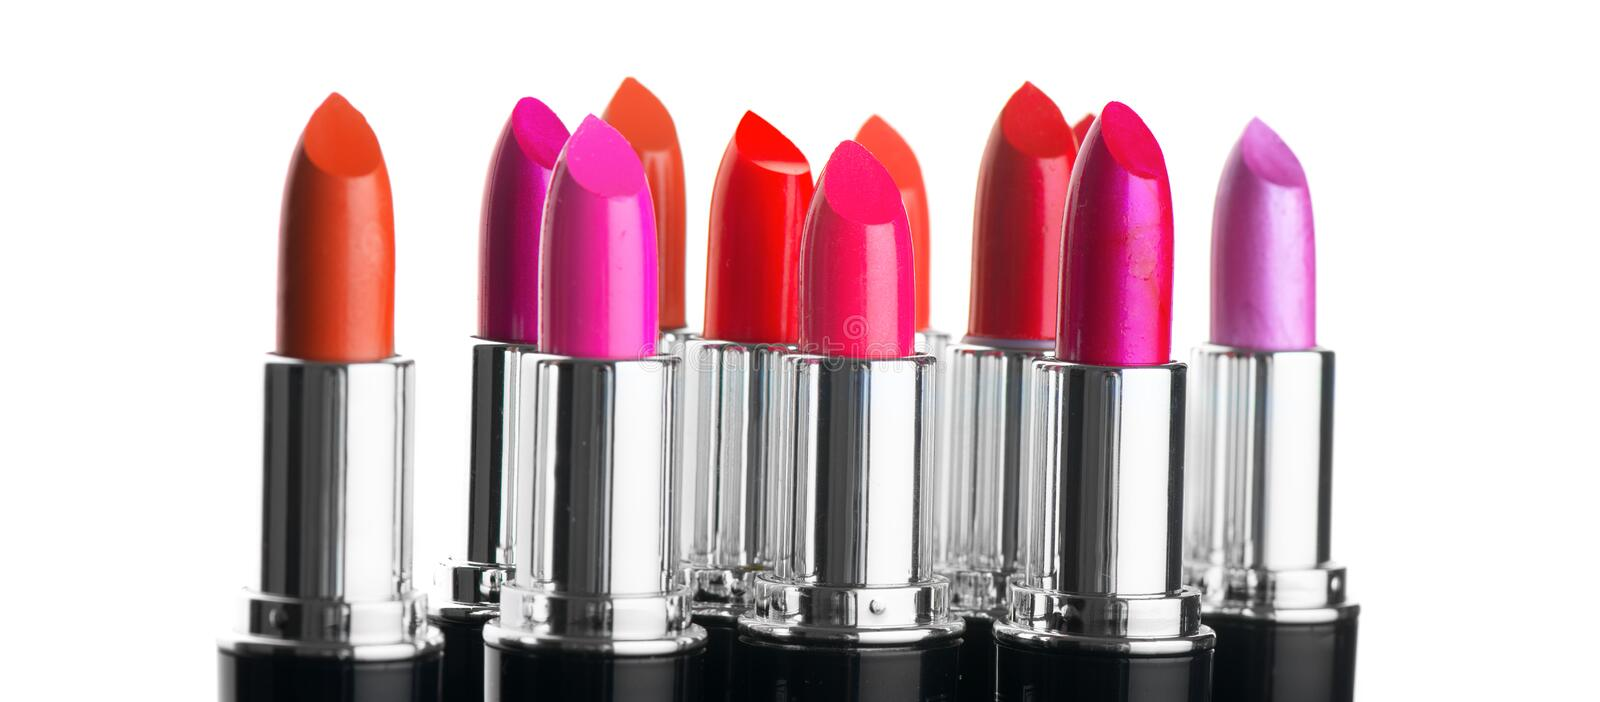 Lipstick tints palette. Fashion colorful lipsticks over white background. Professional makeup stock images